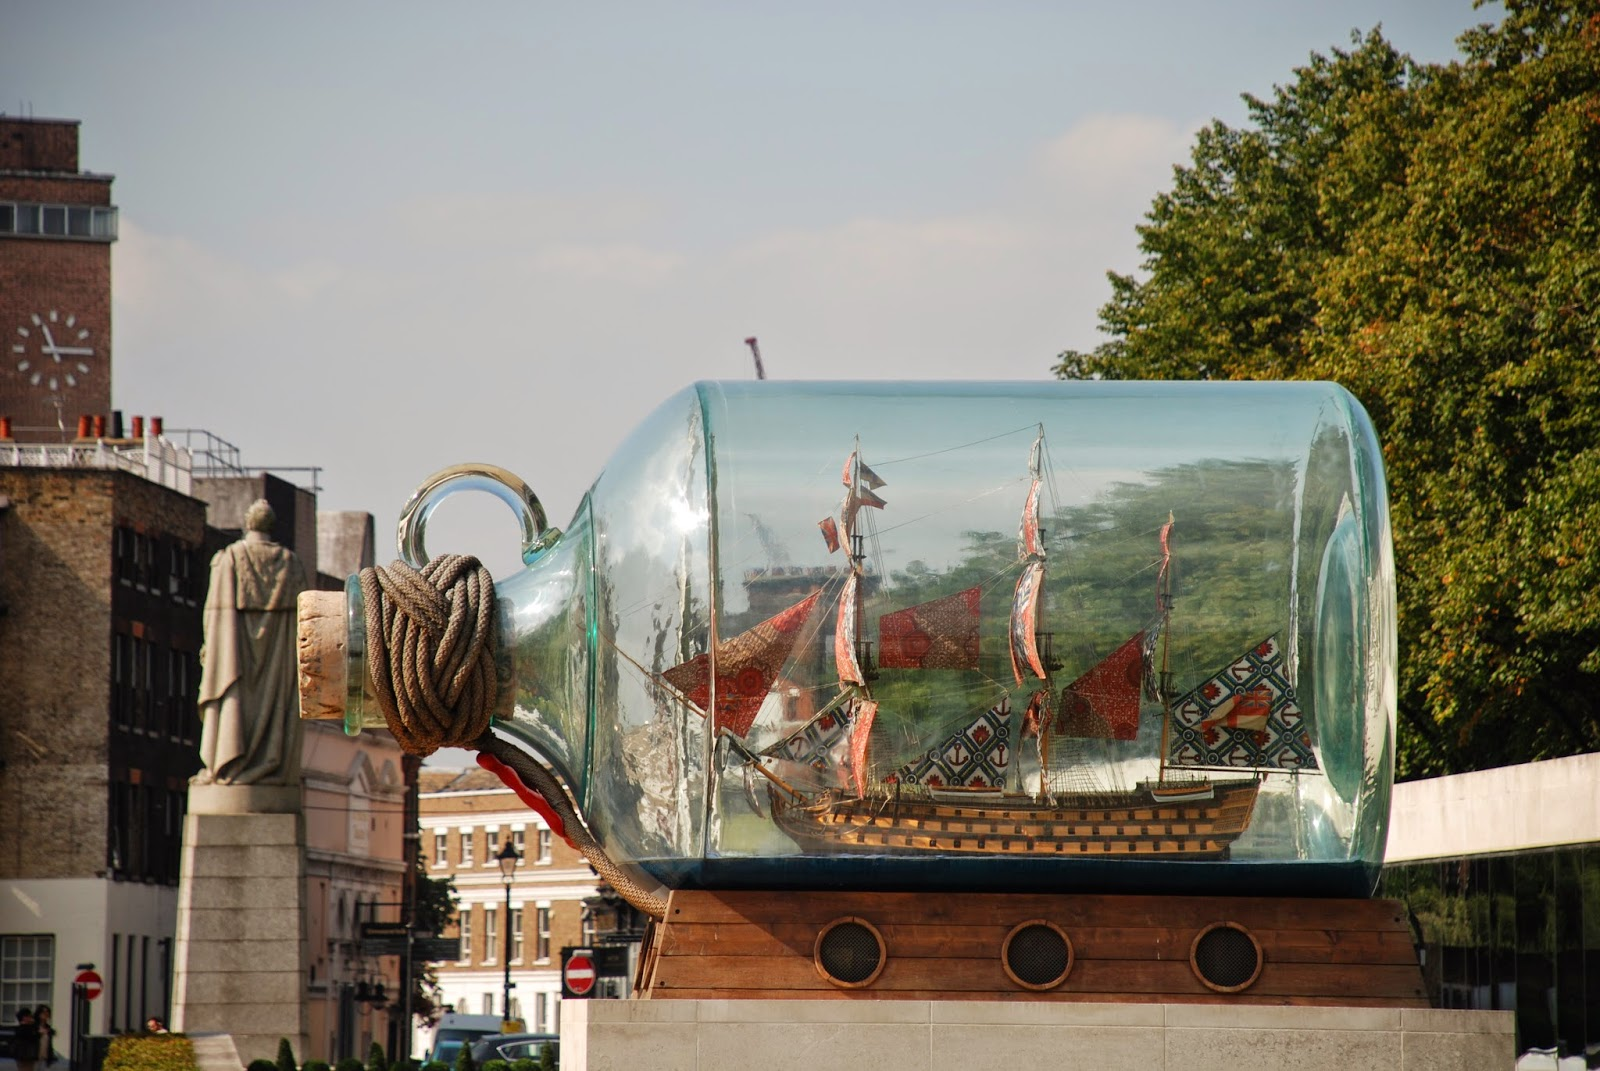 Yinka Shonibare's ship in a bottle, National Maritime Museum, Greenwich